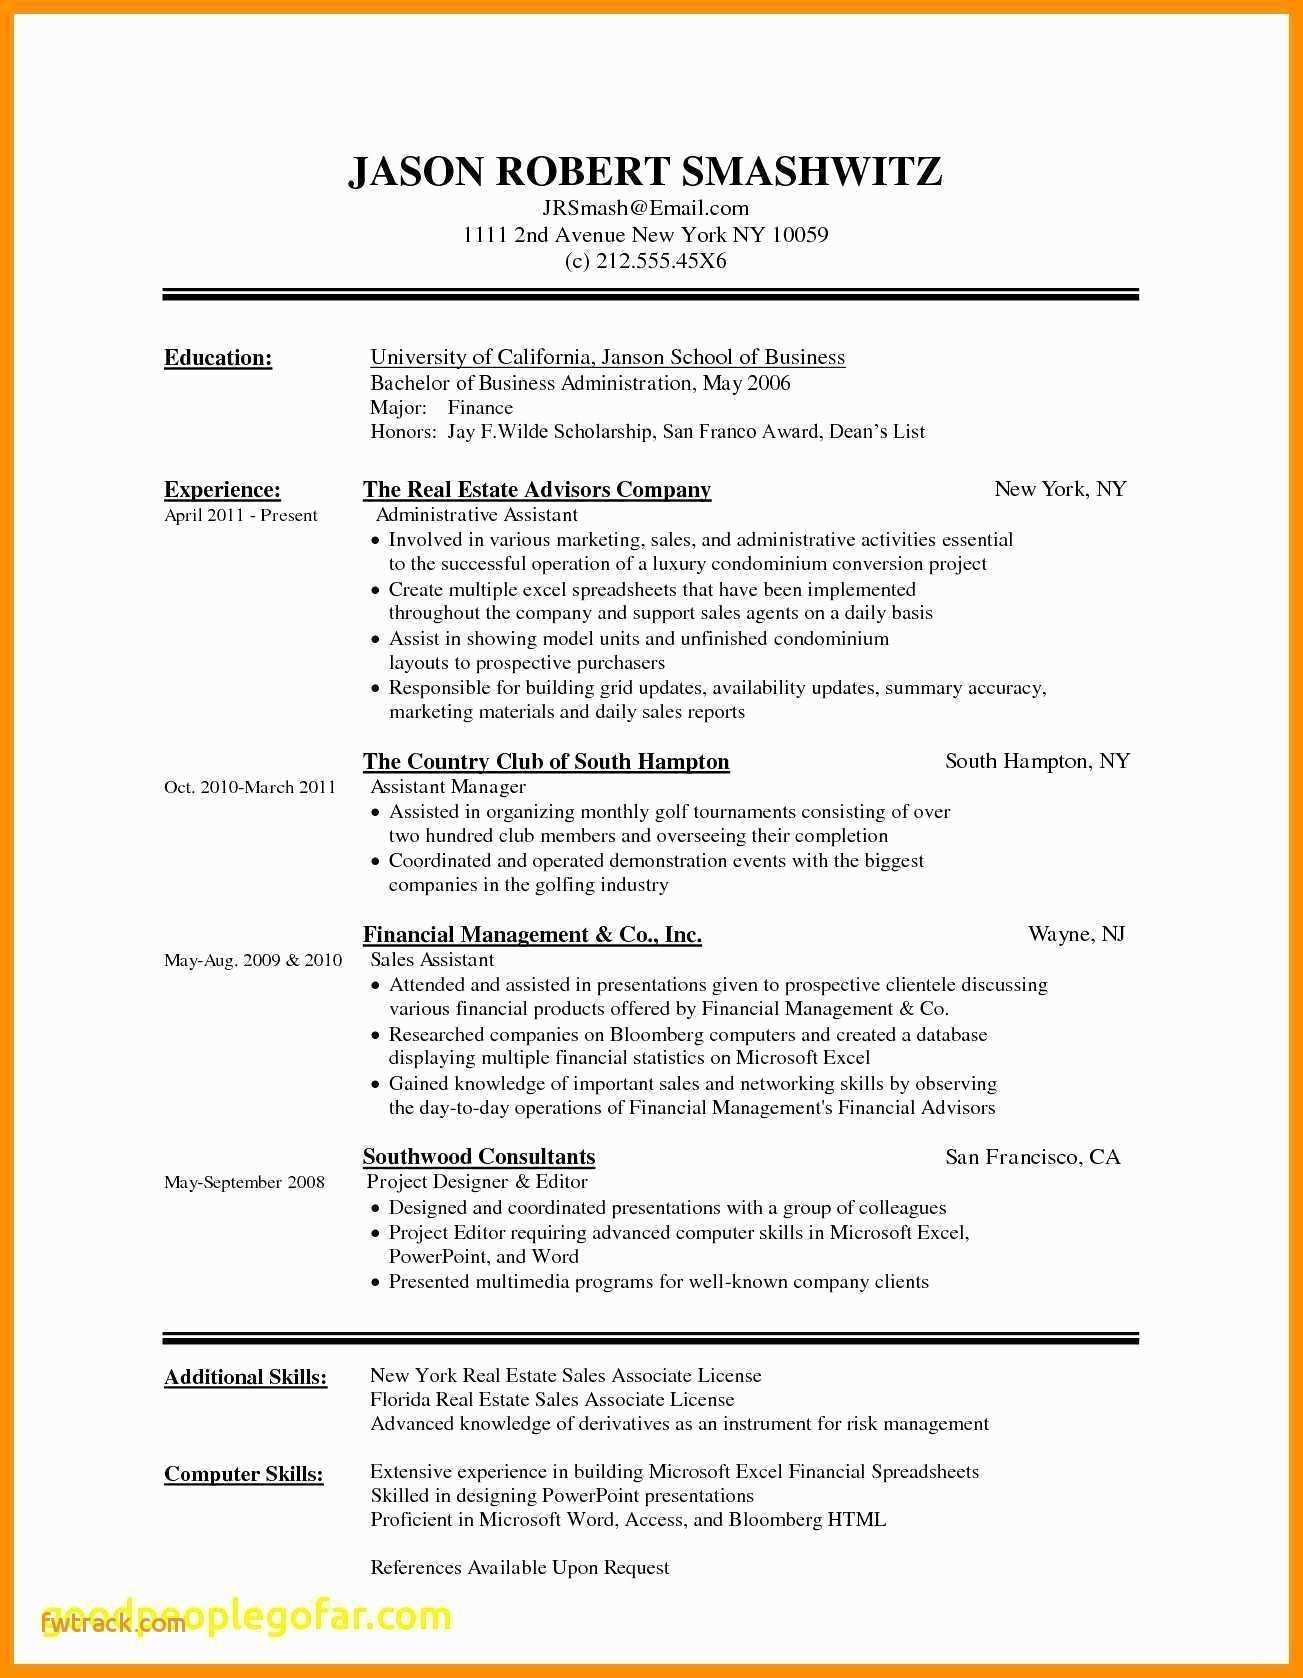 Resume Template for Pages - Resume Templates for Pages Fwtrack Fwtrack